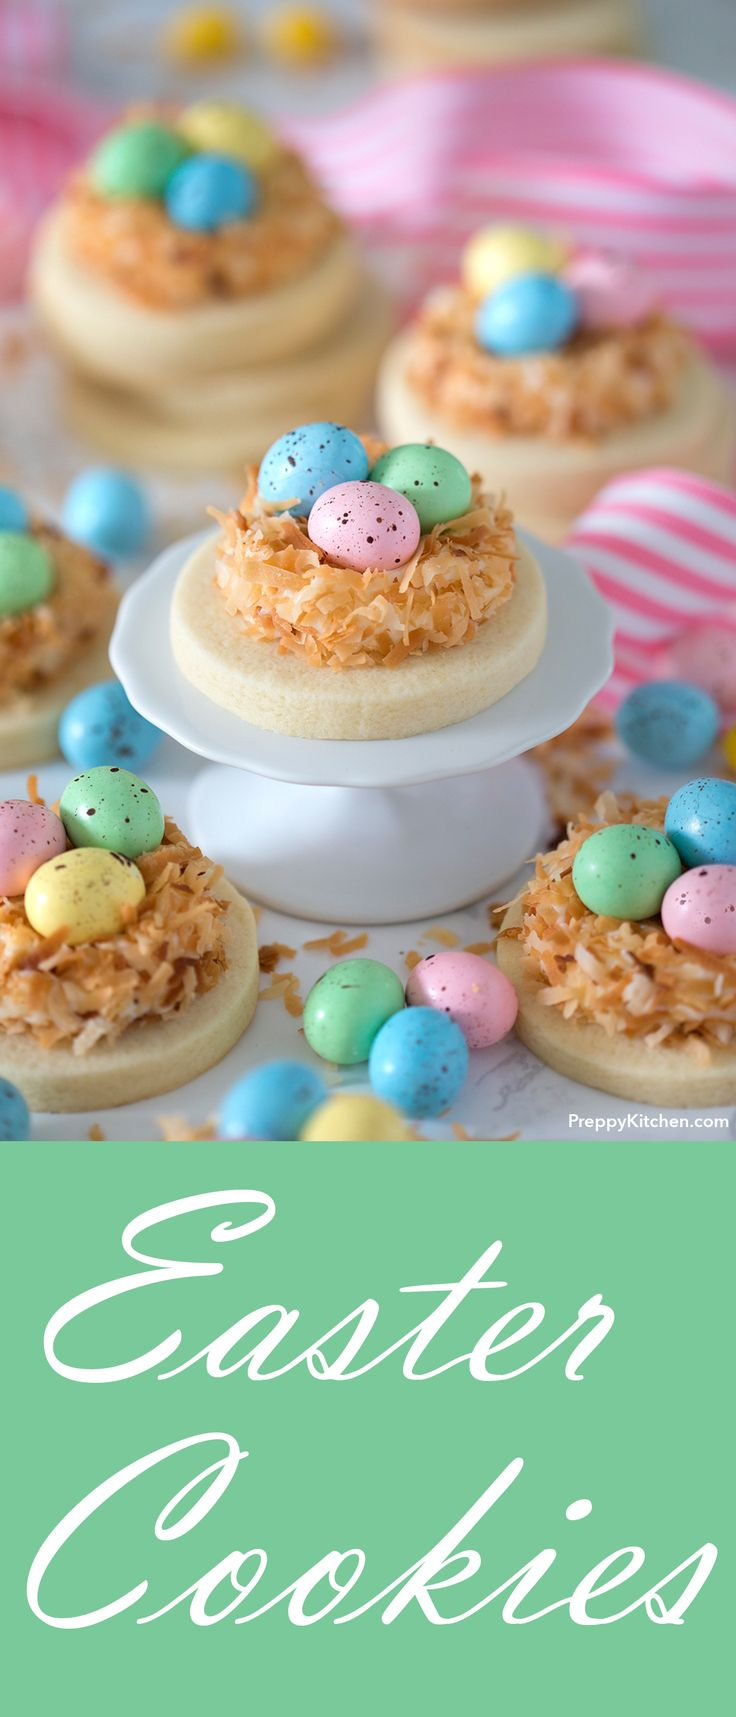 Easy Easter Cookies Tutorial   Easter Cookies Decorating tips and ideas using chocolate eggs   Bird's Nest Decoration   Frugal Easter Decorating Ideas #easter #cookies #easteregg #desserts #chocolate #chocolateeggs #eggs